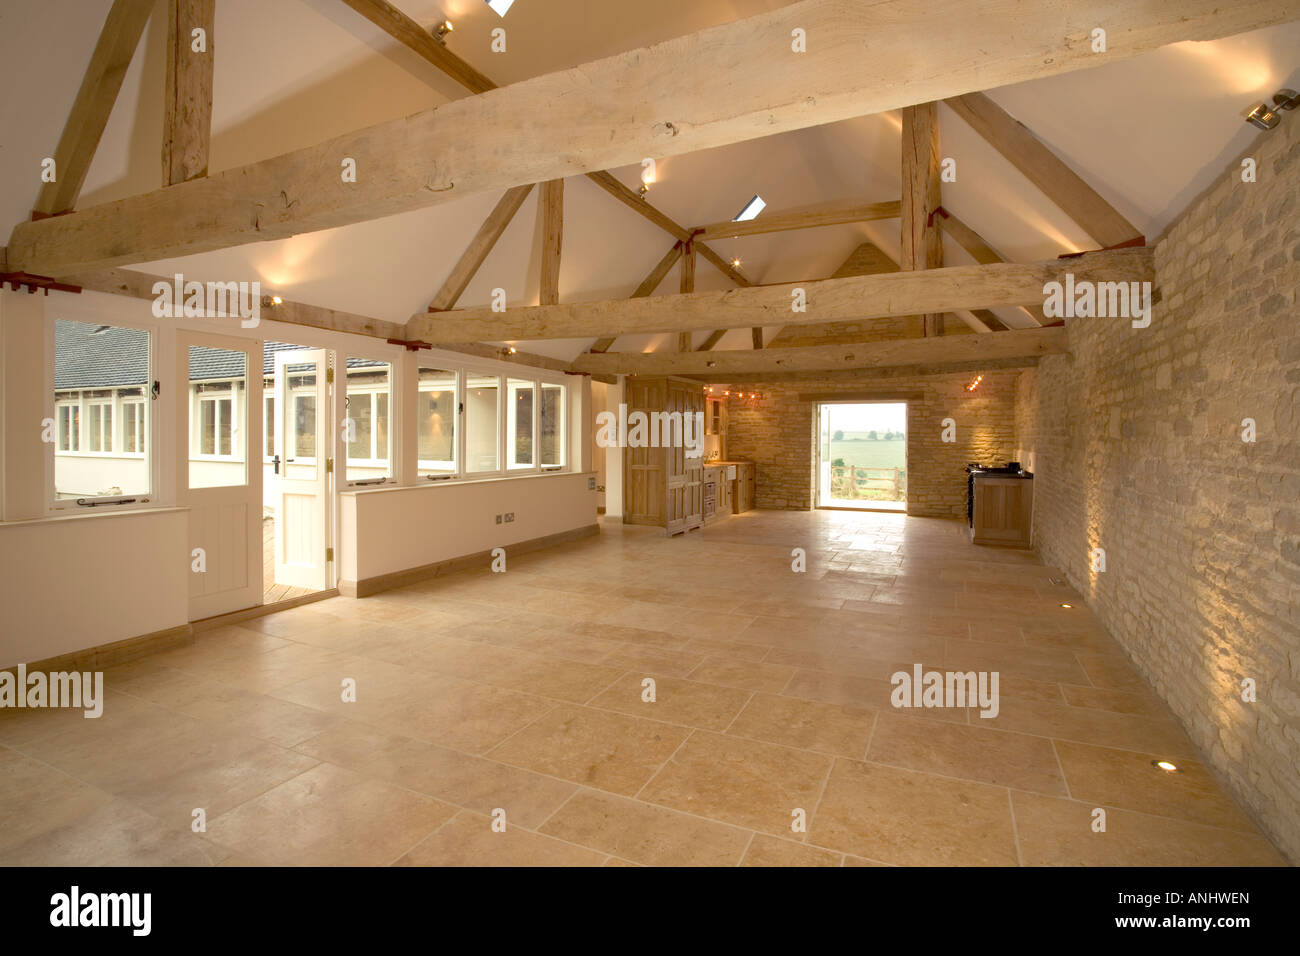 New Property Interior Large Wood Beamed Barn Conversion